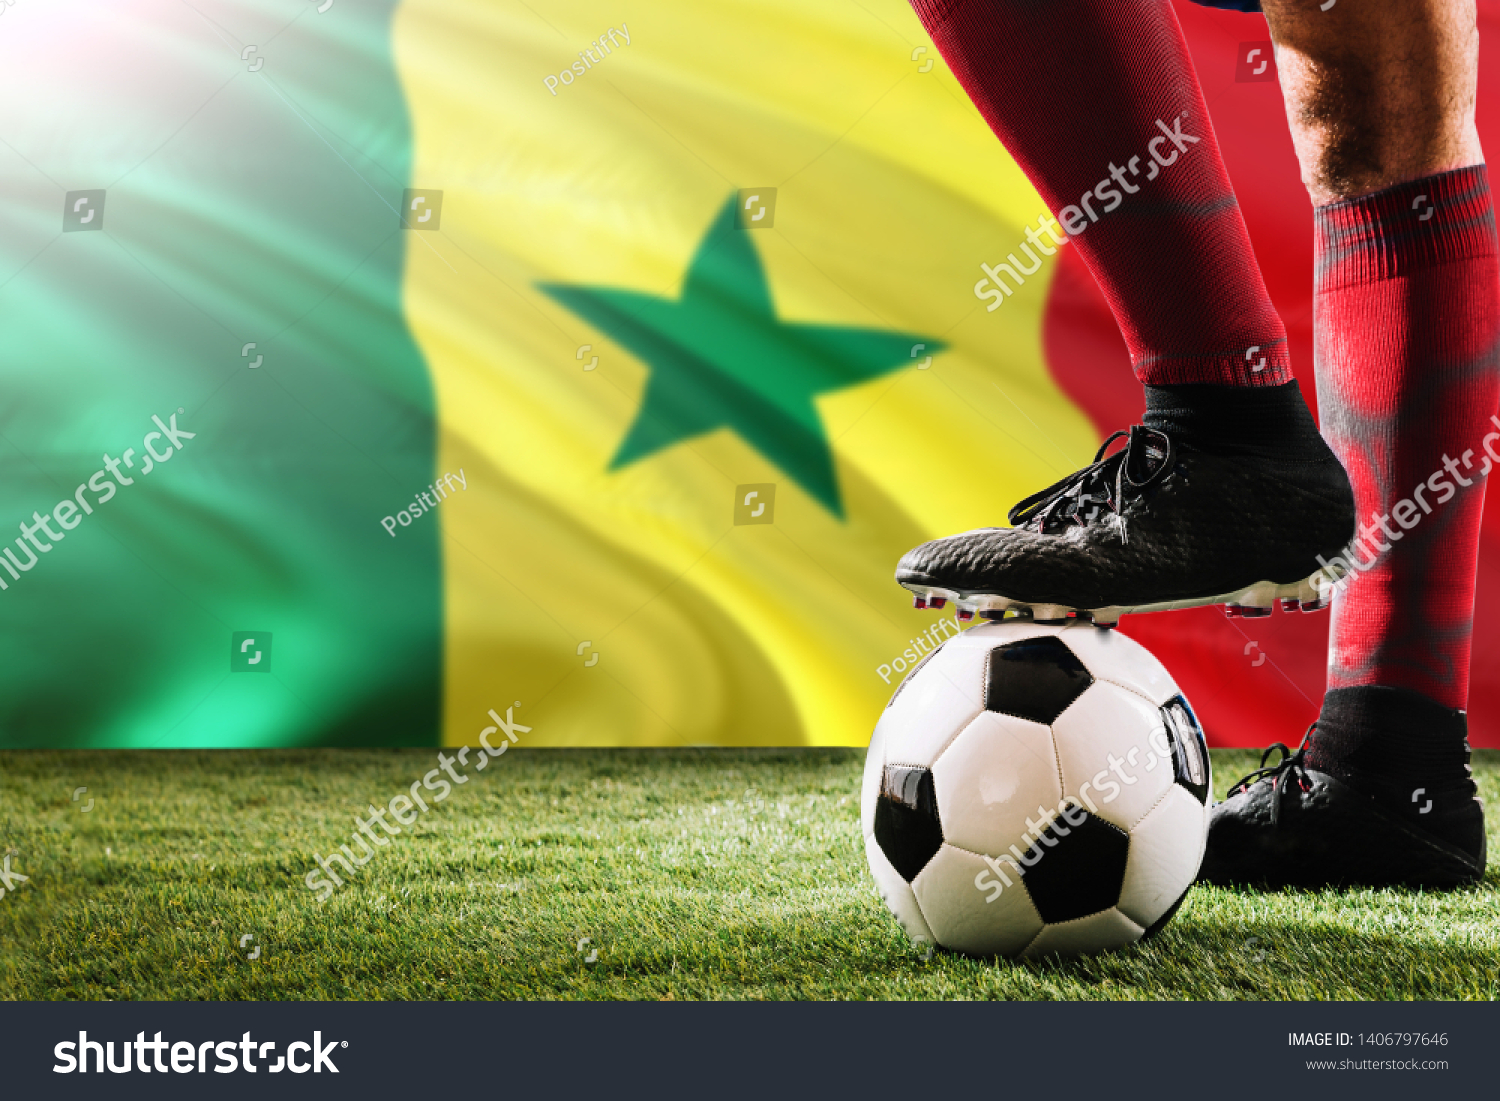 Close up legs of Senegal football team player in red socks, shoes on soccer ball at the free kick or penalty spot playing on grass. #1406797646